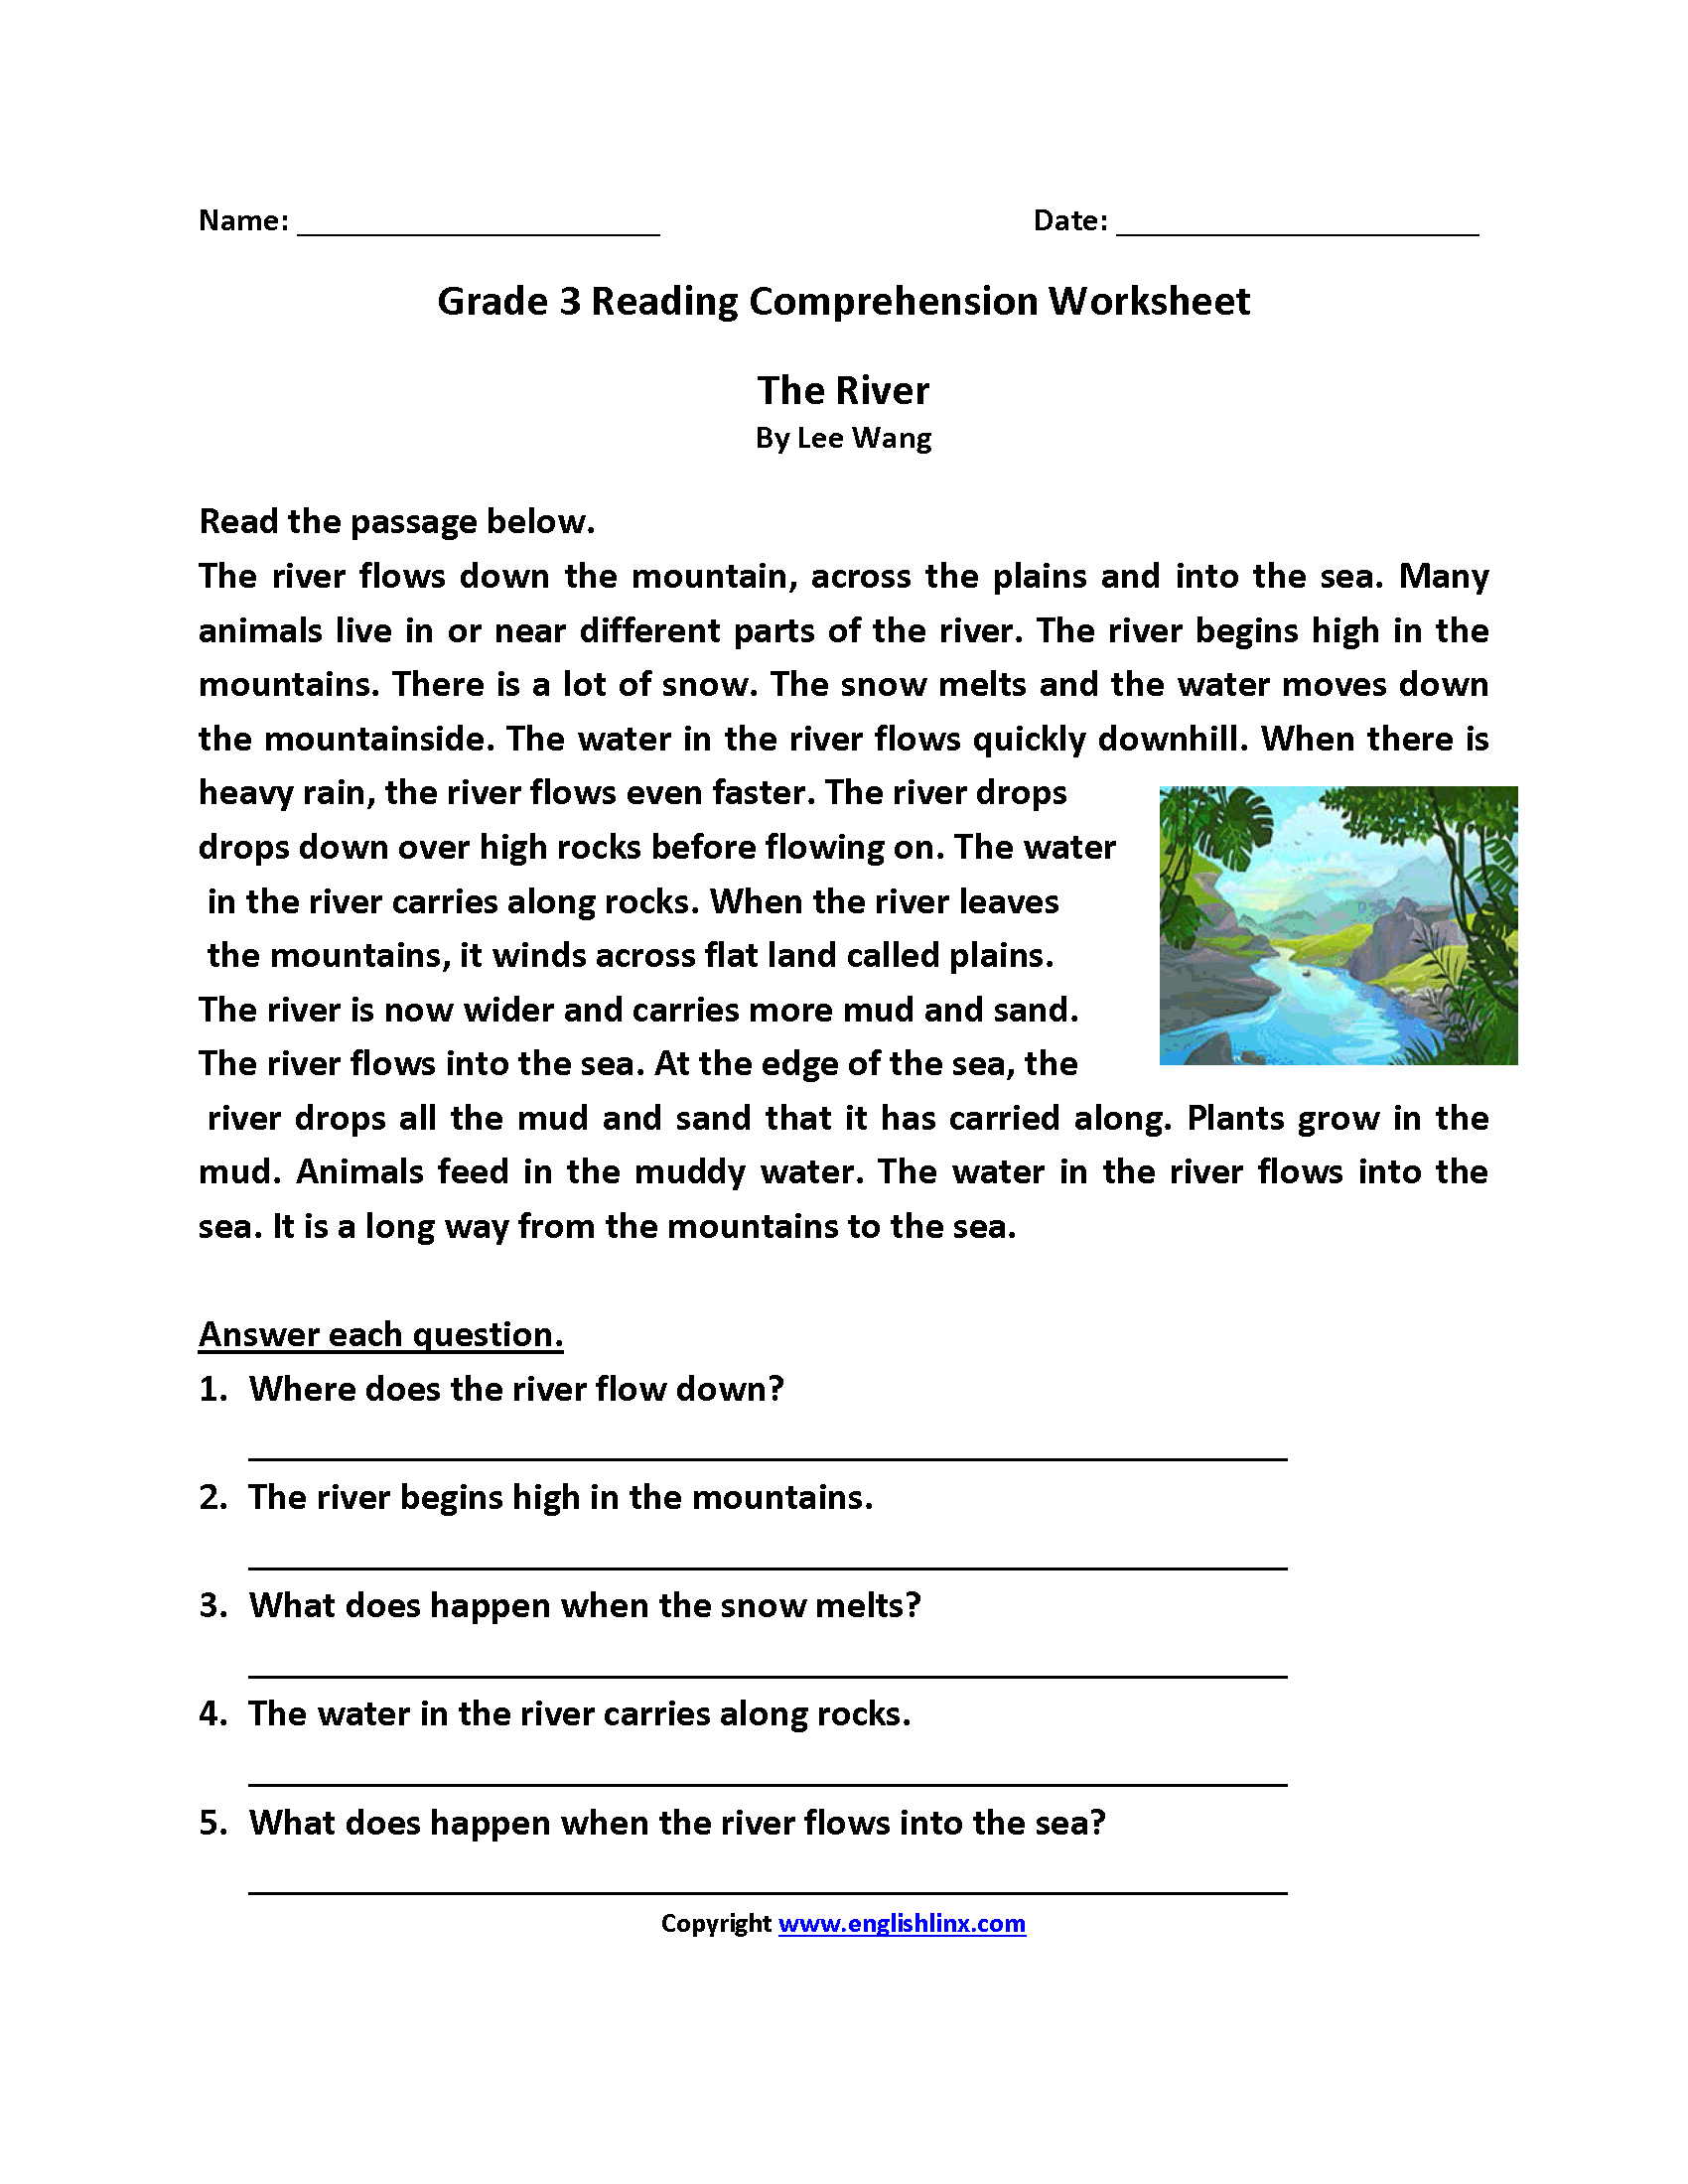 Reading Comprehension Worksheet For 3rd Grade Printable